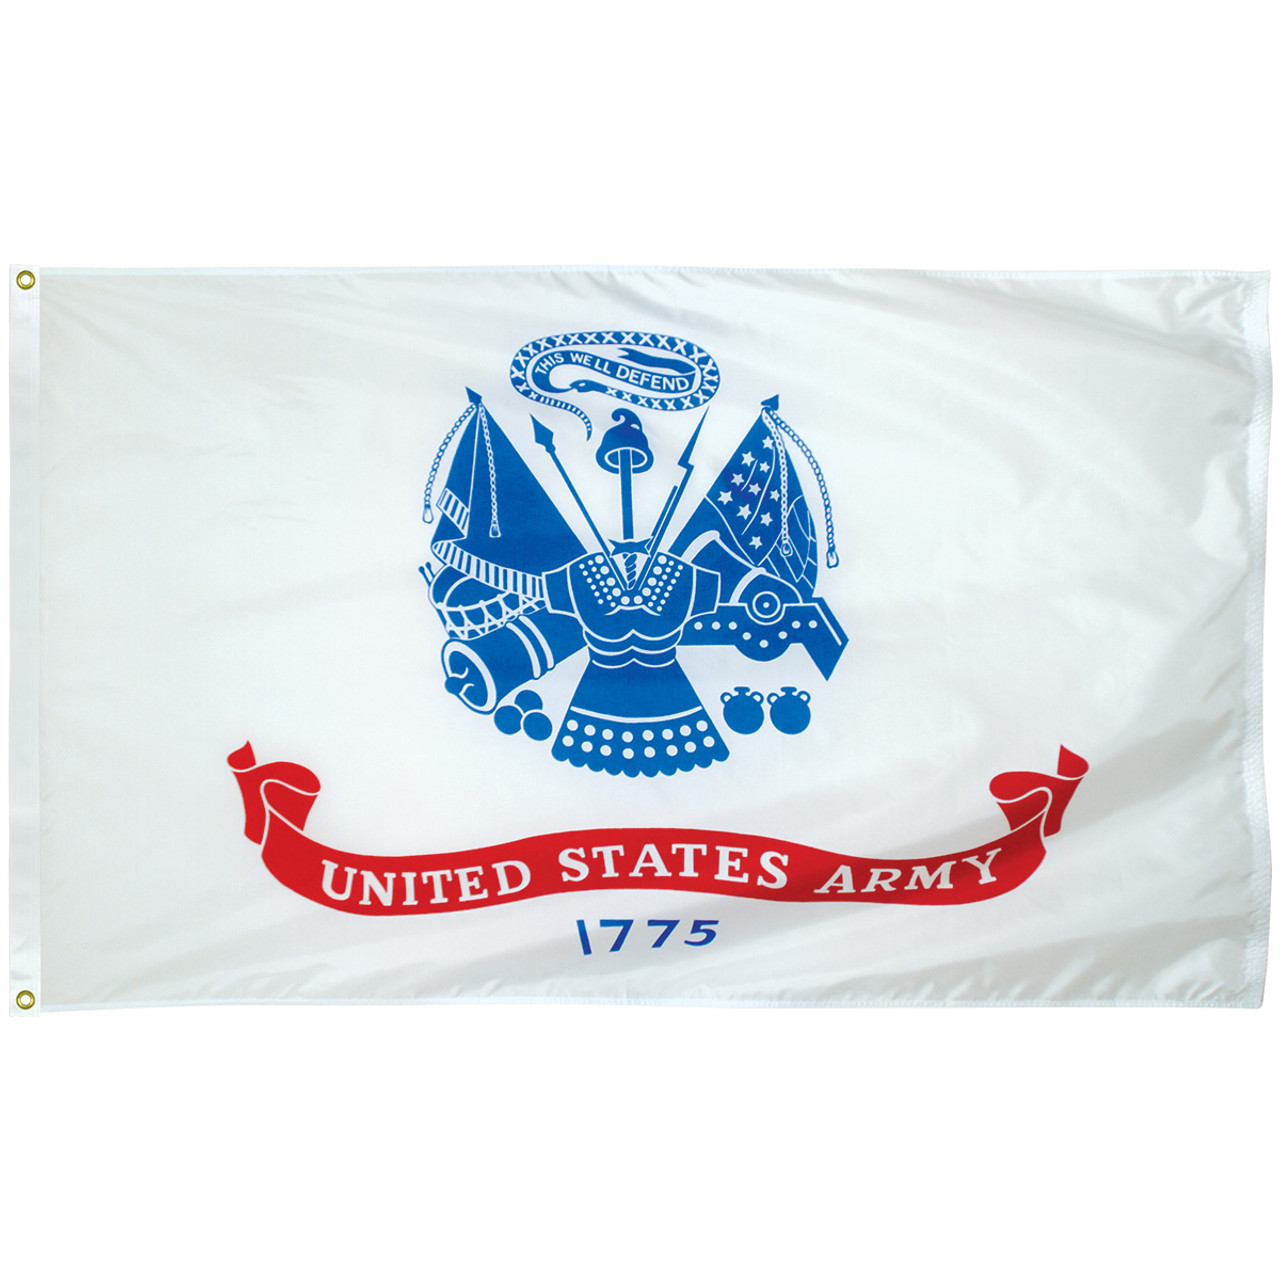 3' x 5' Poly-Max Outdoor Army Flag 070406